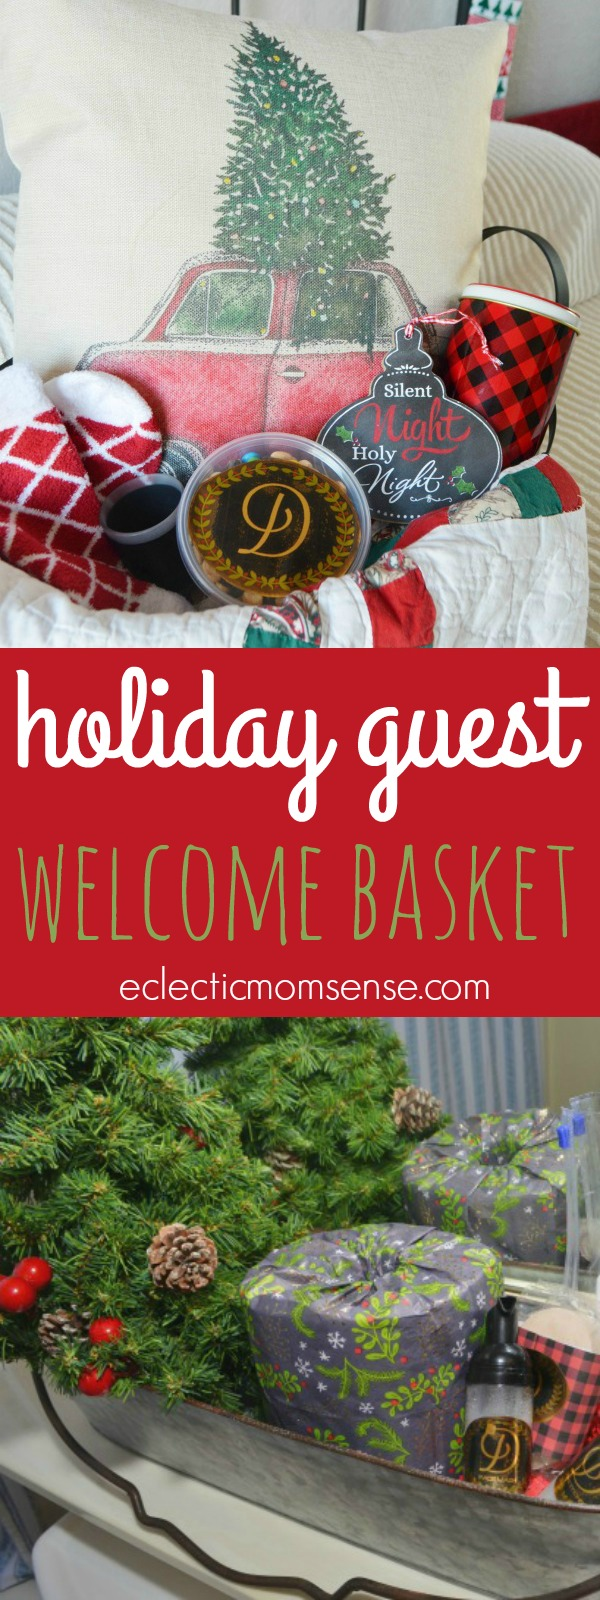 Great tips for perfectly prepping your home for guests. Plus ideas for putting together guest welcome baskets to provide a little comfort.